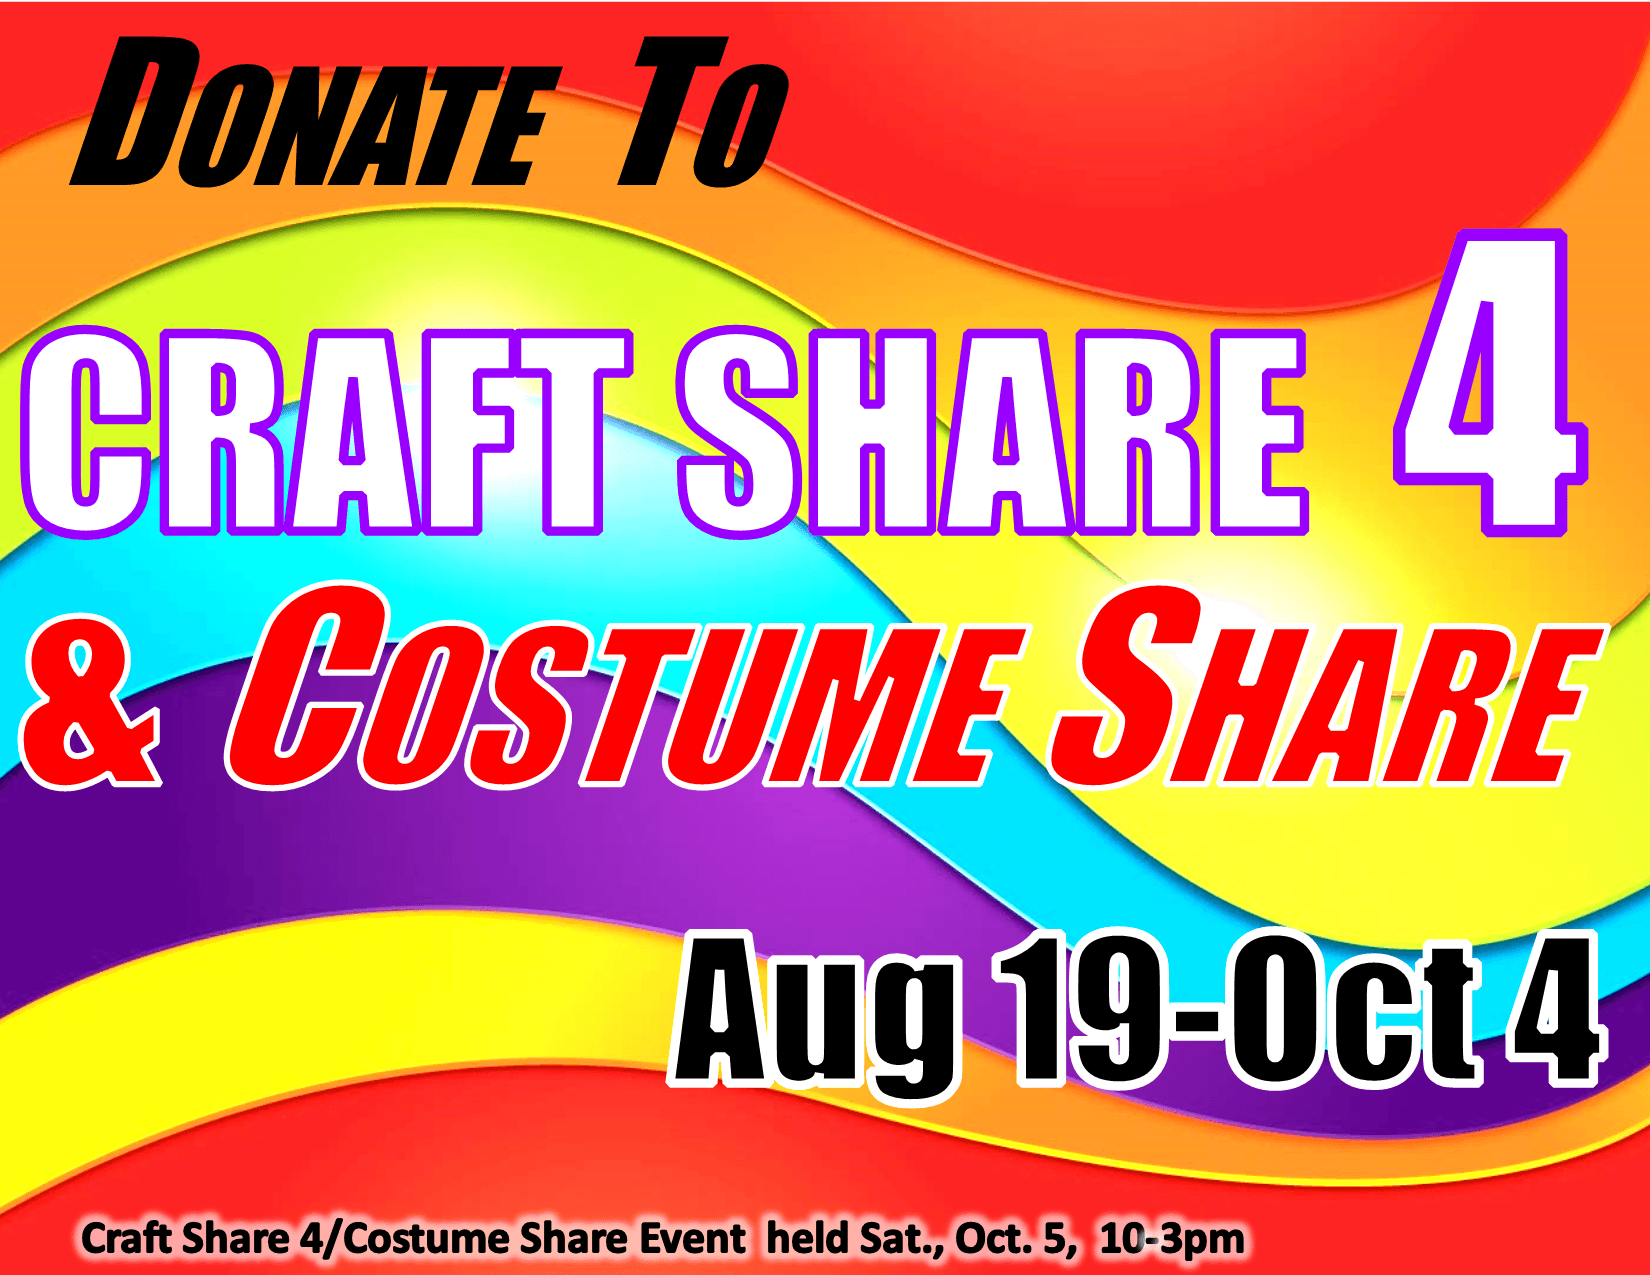 Craft Share 4 and Costume Share